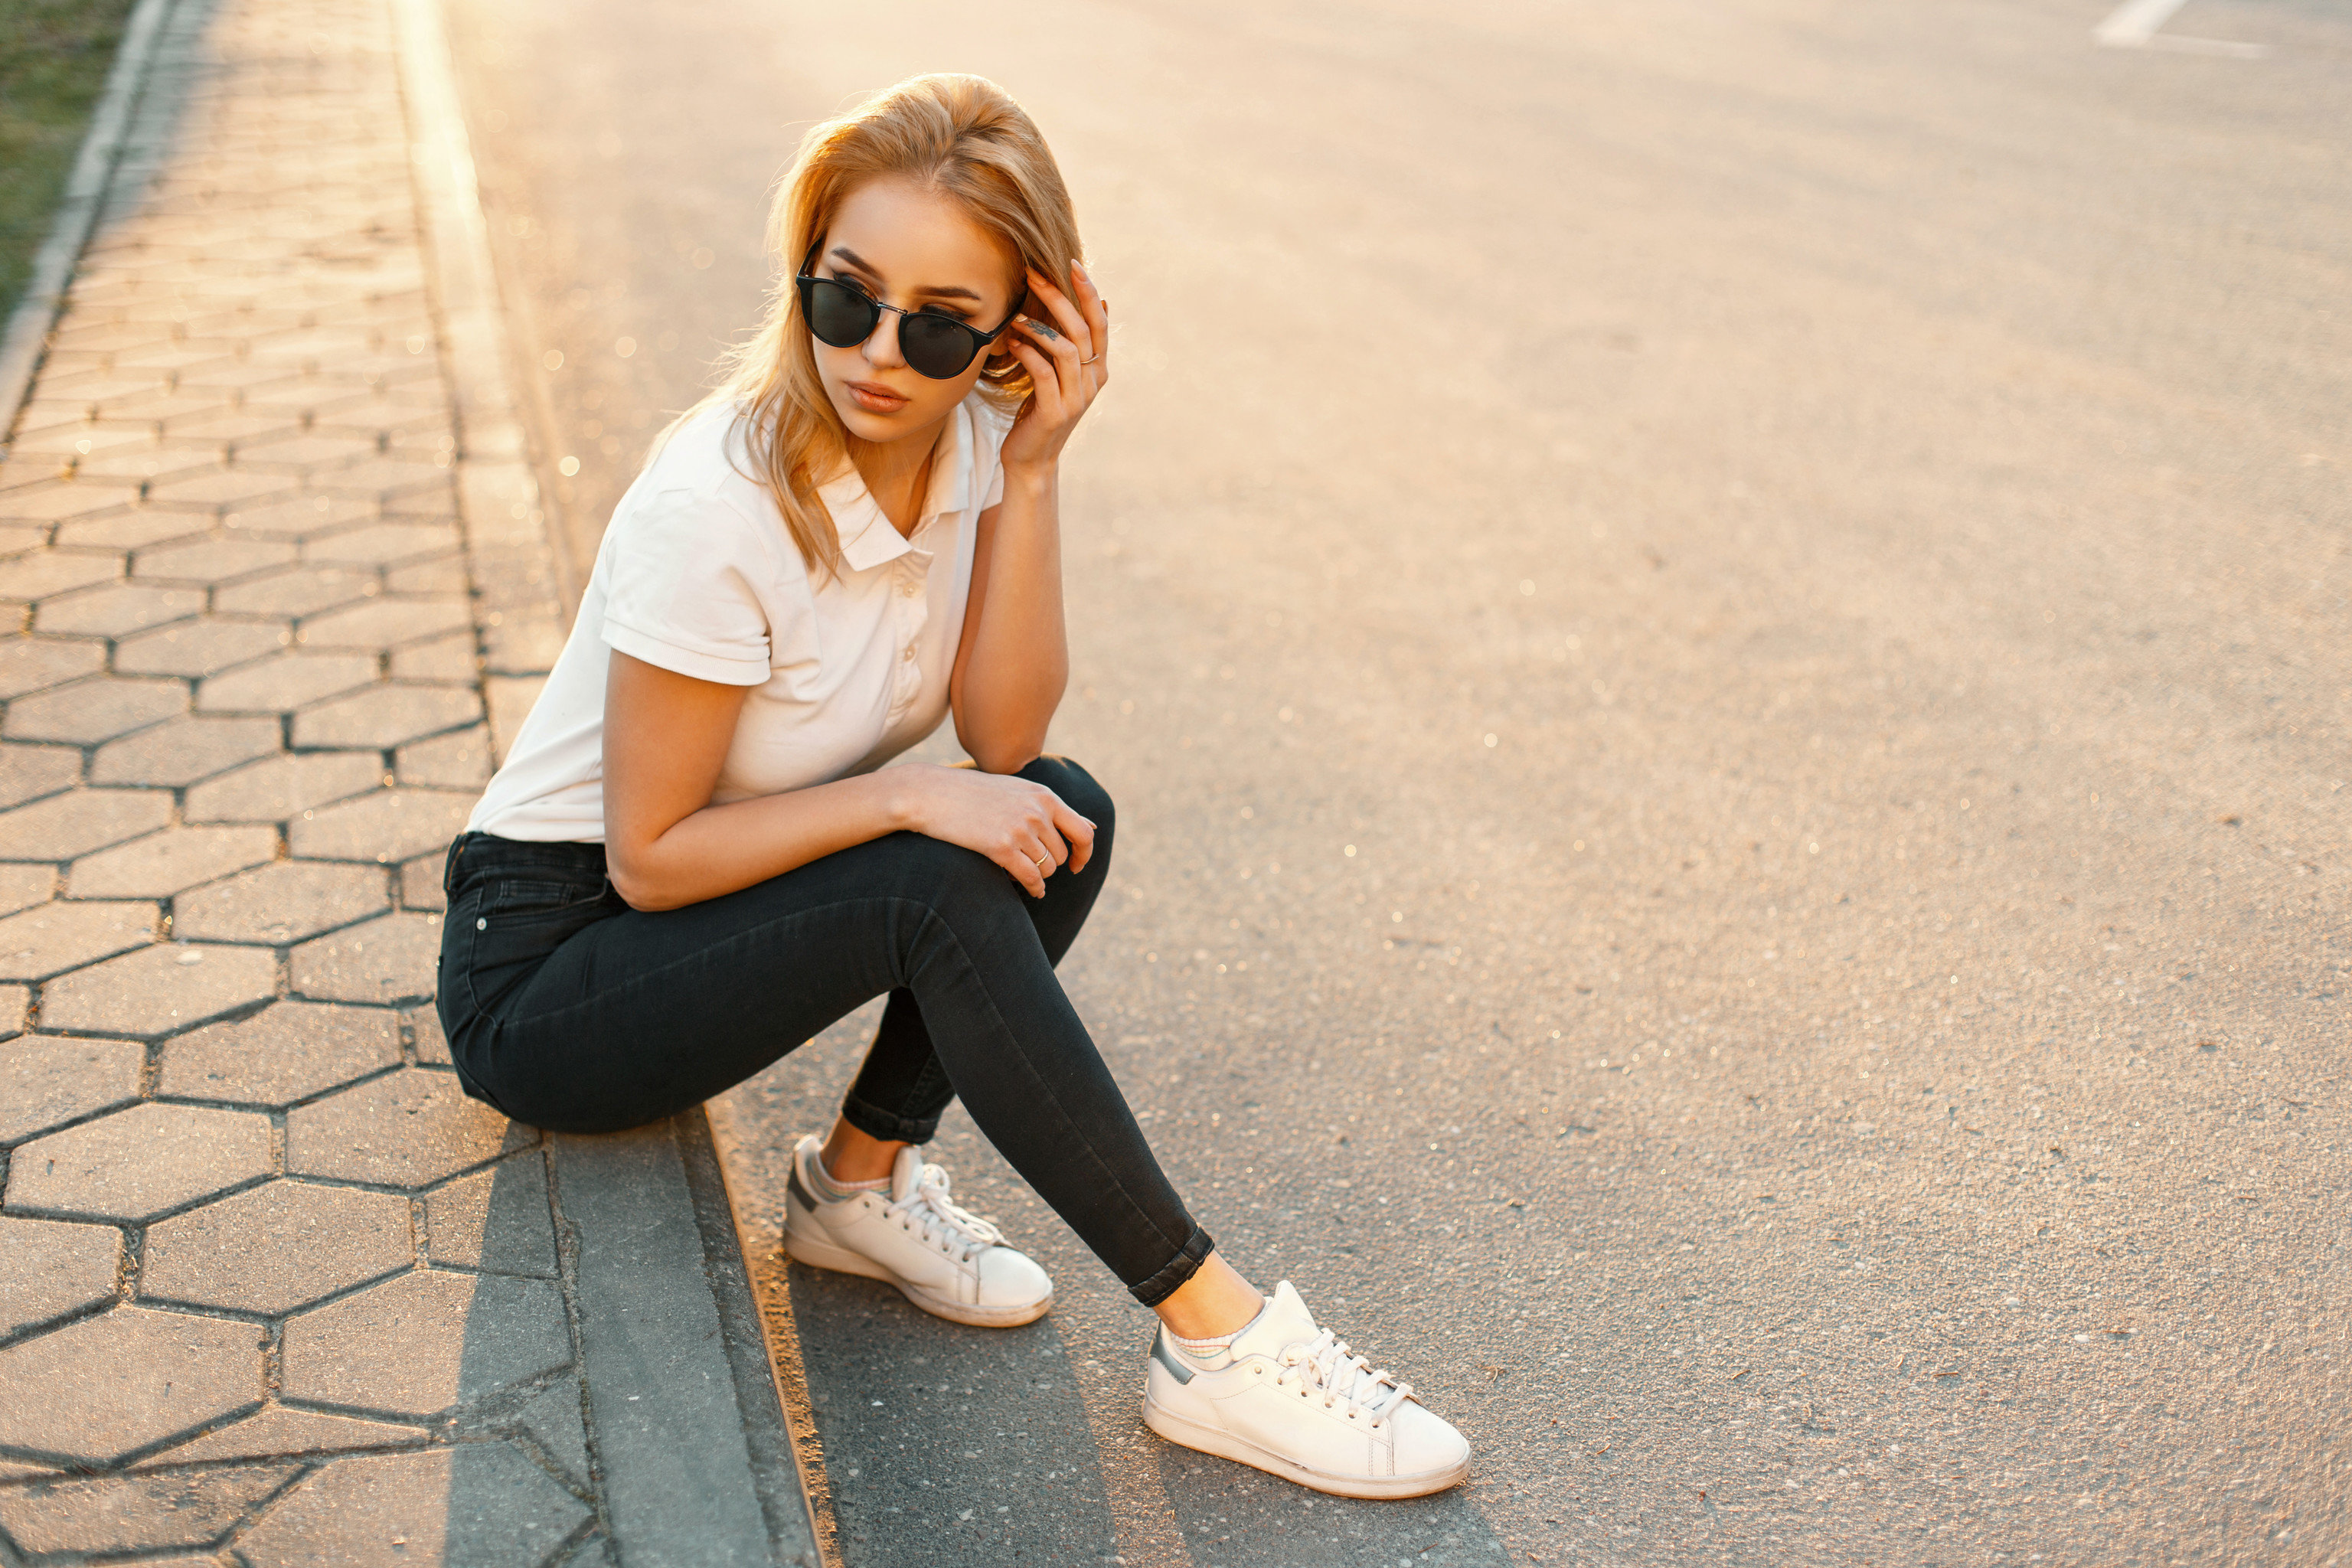 21 BEST White Sneakers for Women That Go With Everything